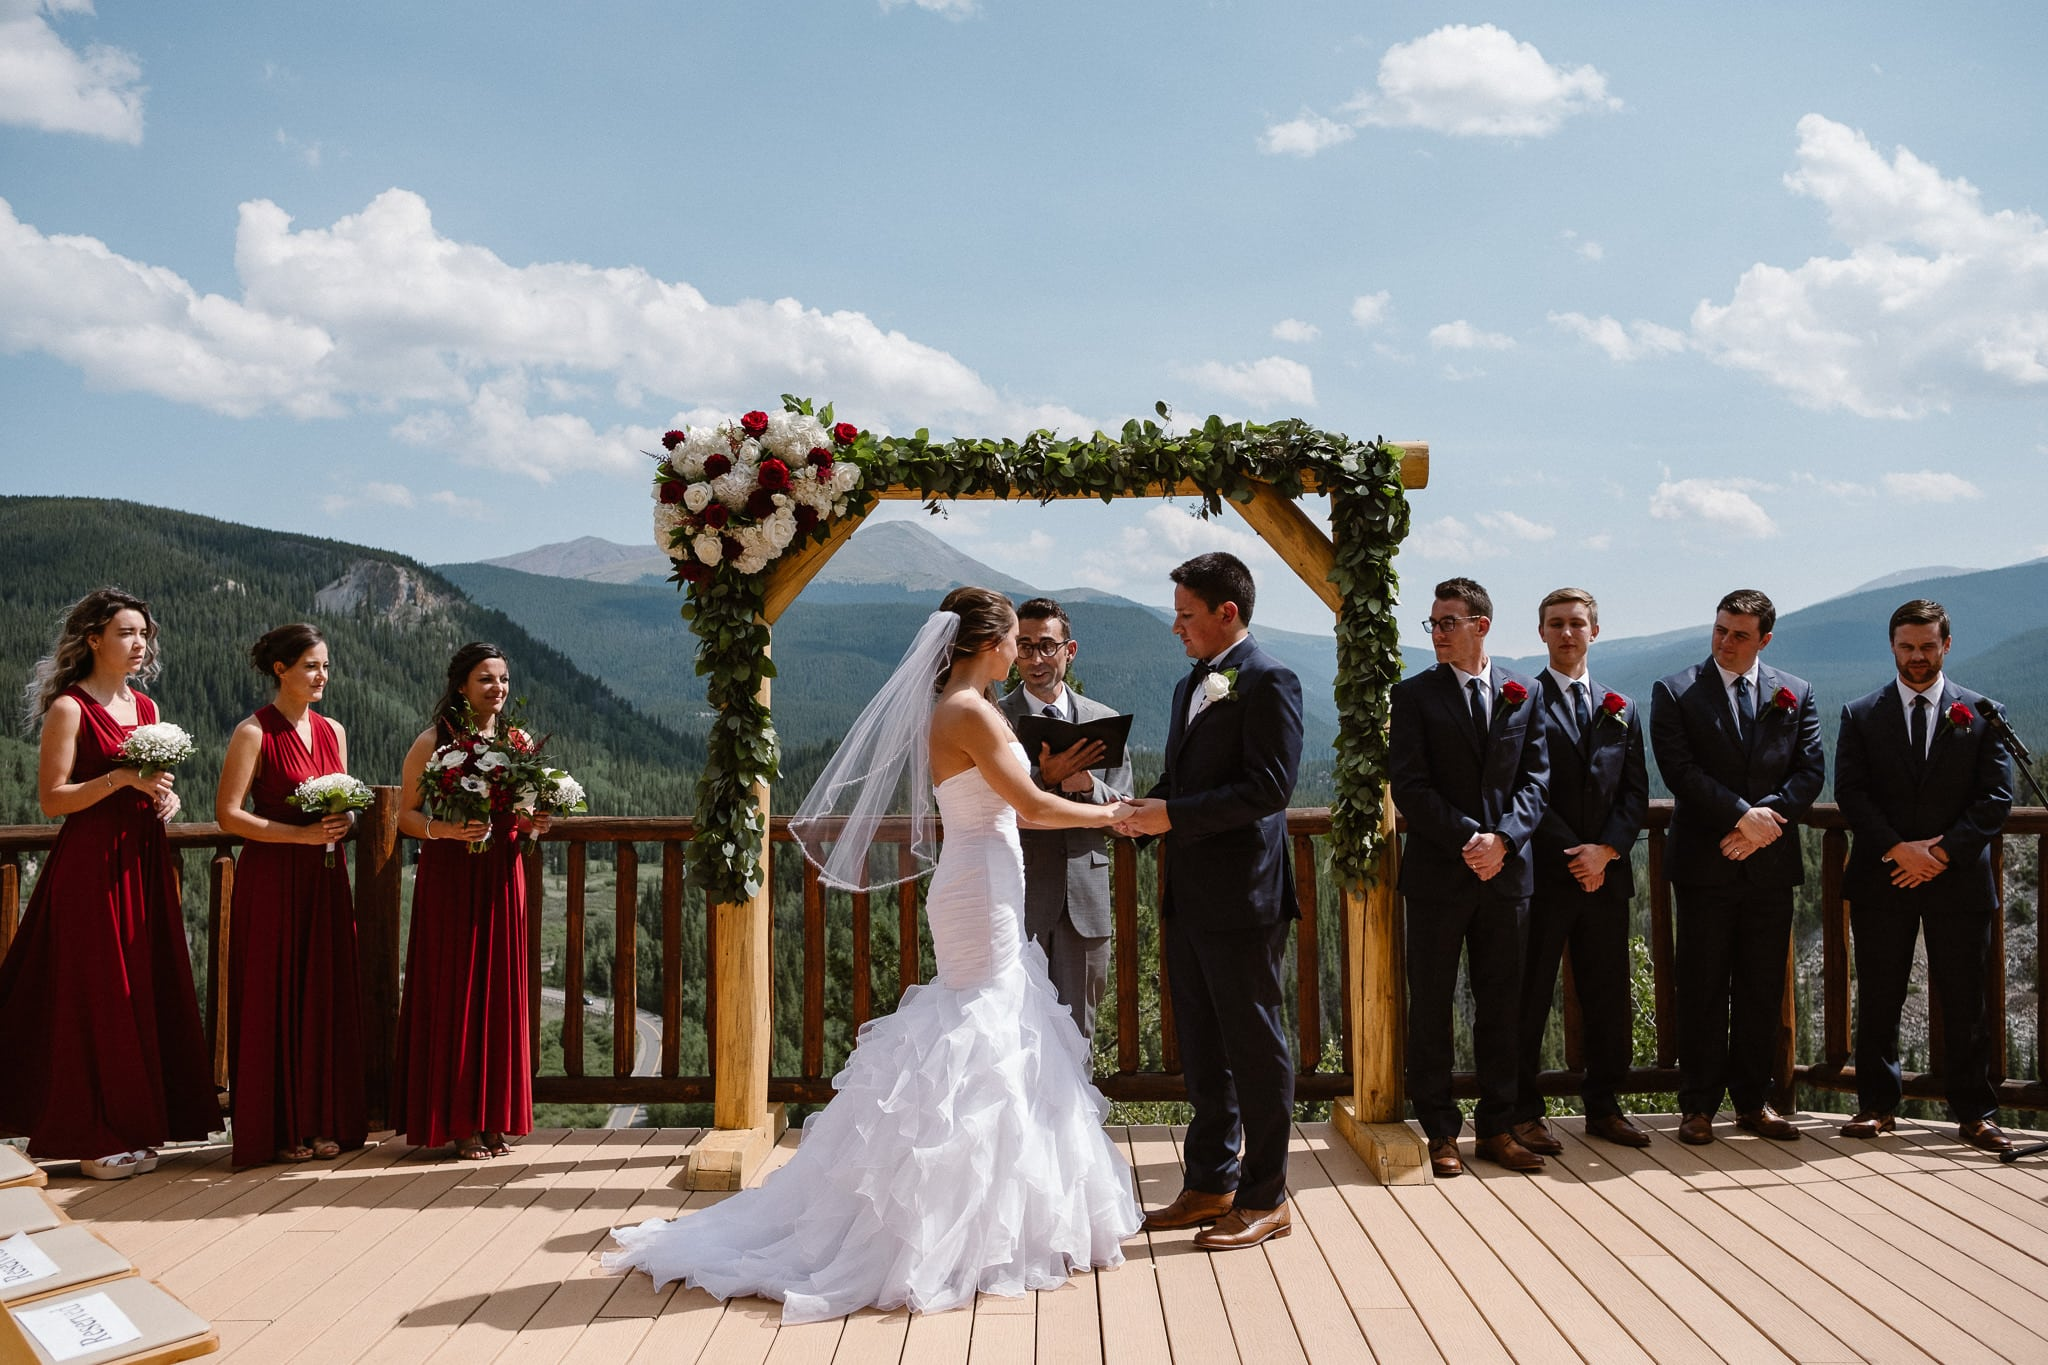 Wedding ceremony at The Lodge at Breckenridge.